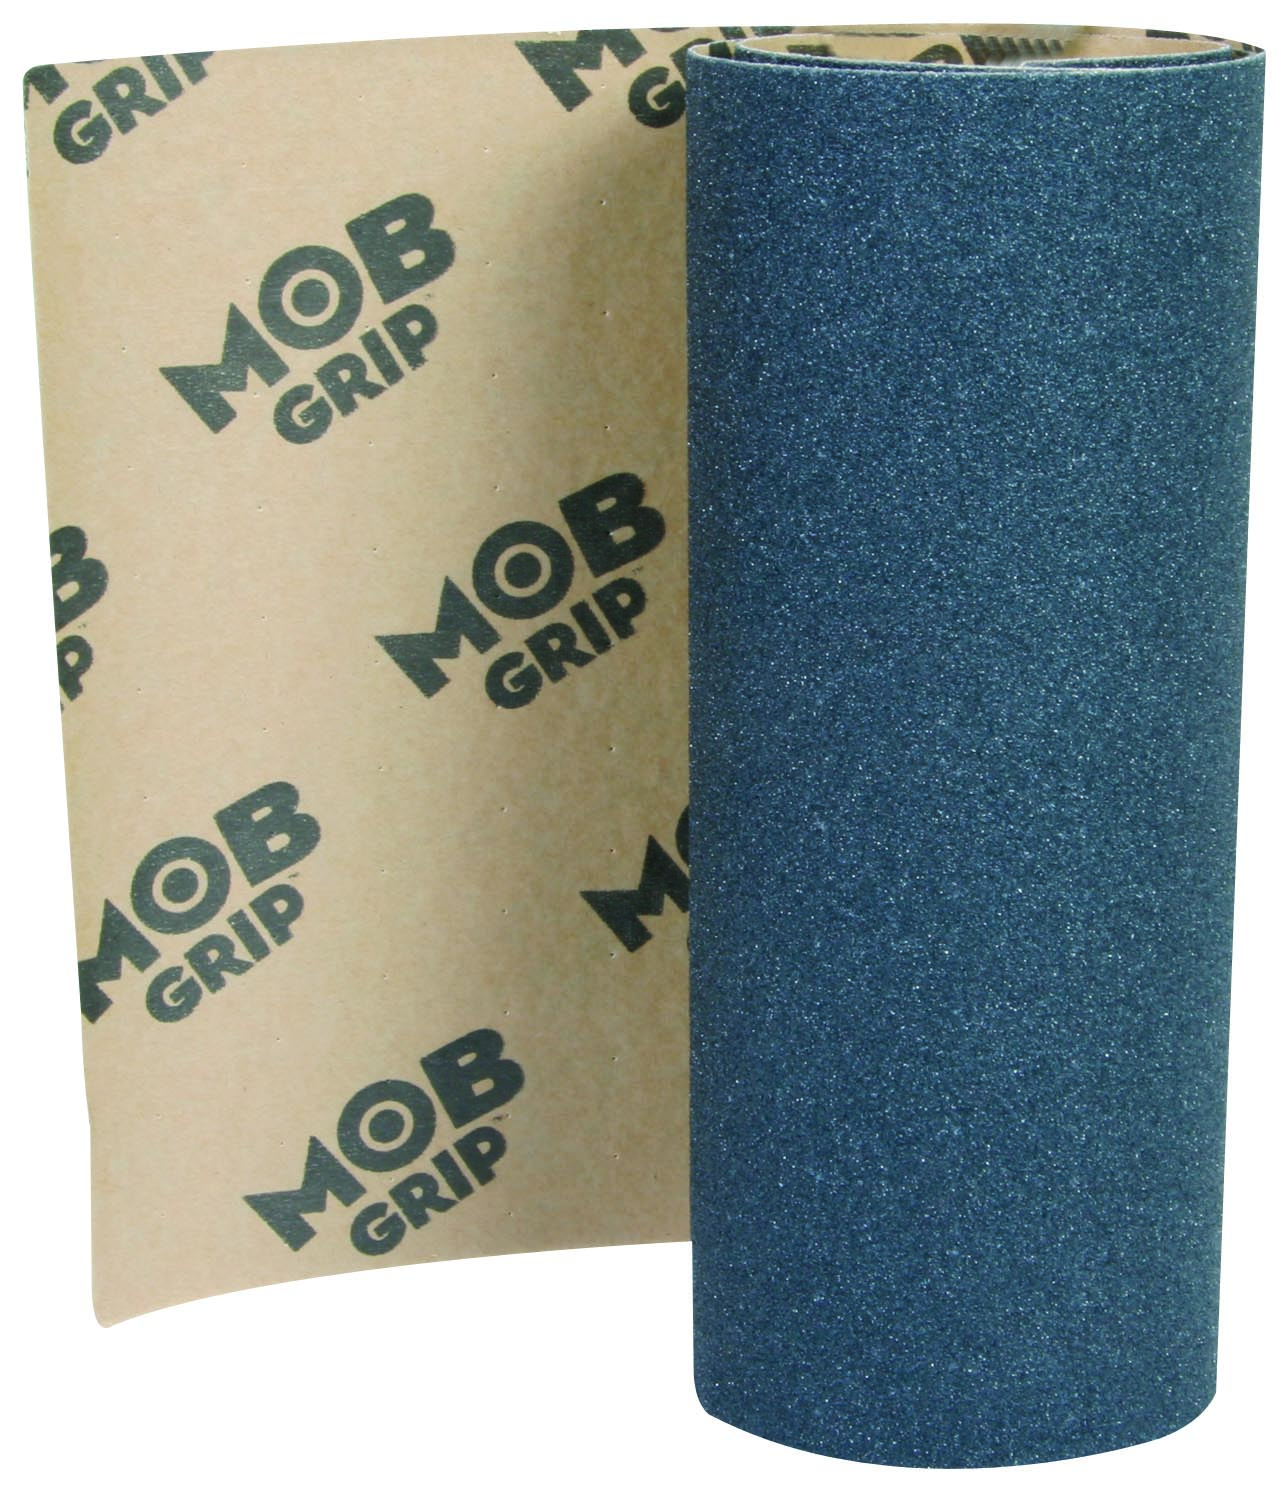 Skateboard Mob Perforated Skateboard Grip Tape is one of the grippiest grip tapes available.Key Features: High strength, tear resistant, waterproof backing Perforated to eliminate air bubbles Super sticky adhesive that wont peal Enough for one deck/L> - $5.95